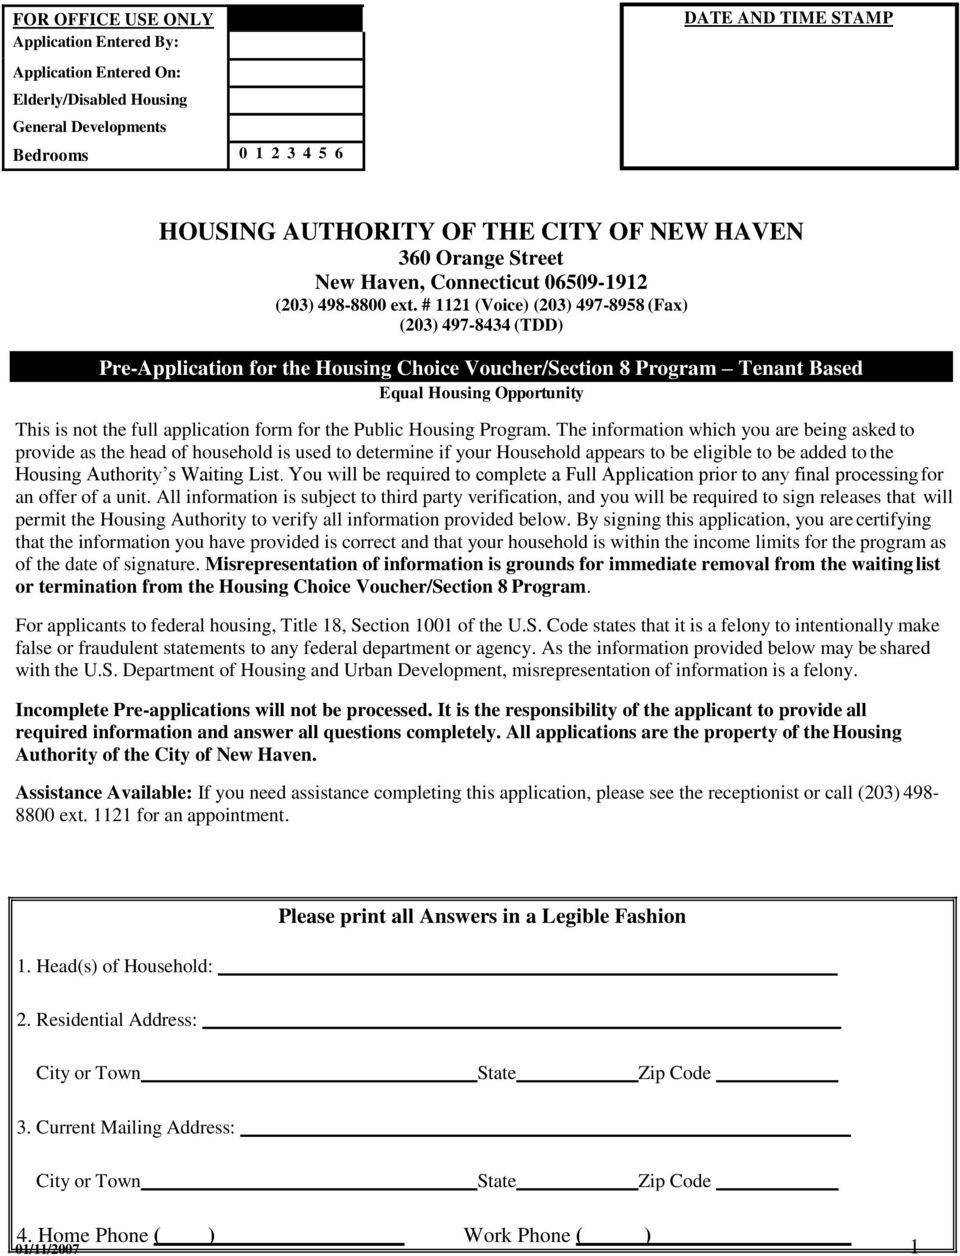 # 1121 (Voice) (203) 497-8958 (Fax) (203) 497-8434 (TDD) Pre-Application for the Housing Choice Voucher/Section 8 Program Tenant Based Equal Housing Opportunity This is not the full application form